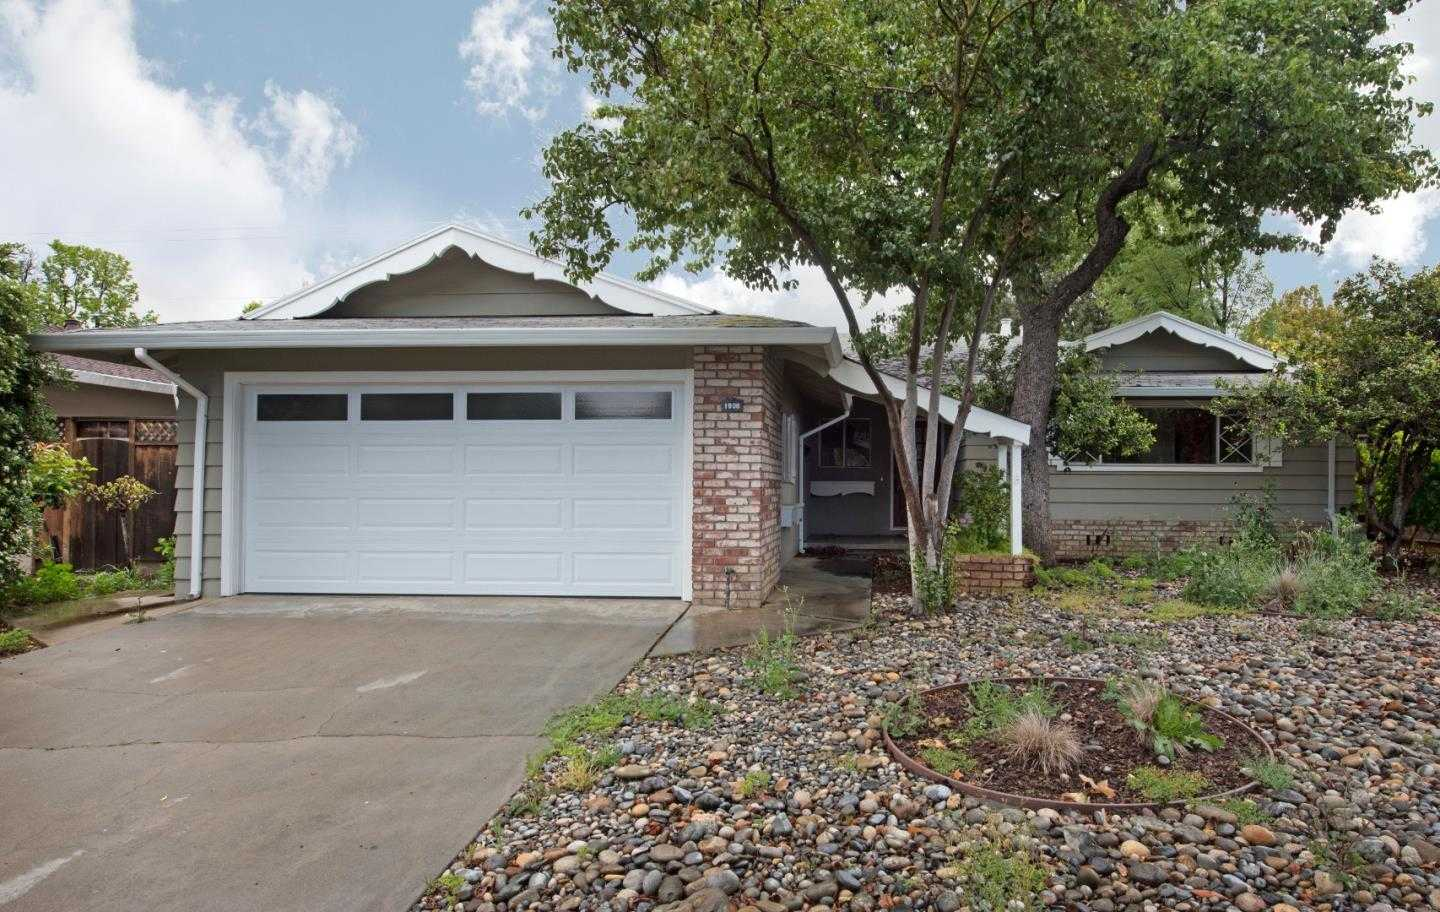 $1,798,000 - 3Br/2Ba -  for Sale in Sunnyvale